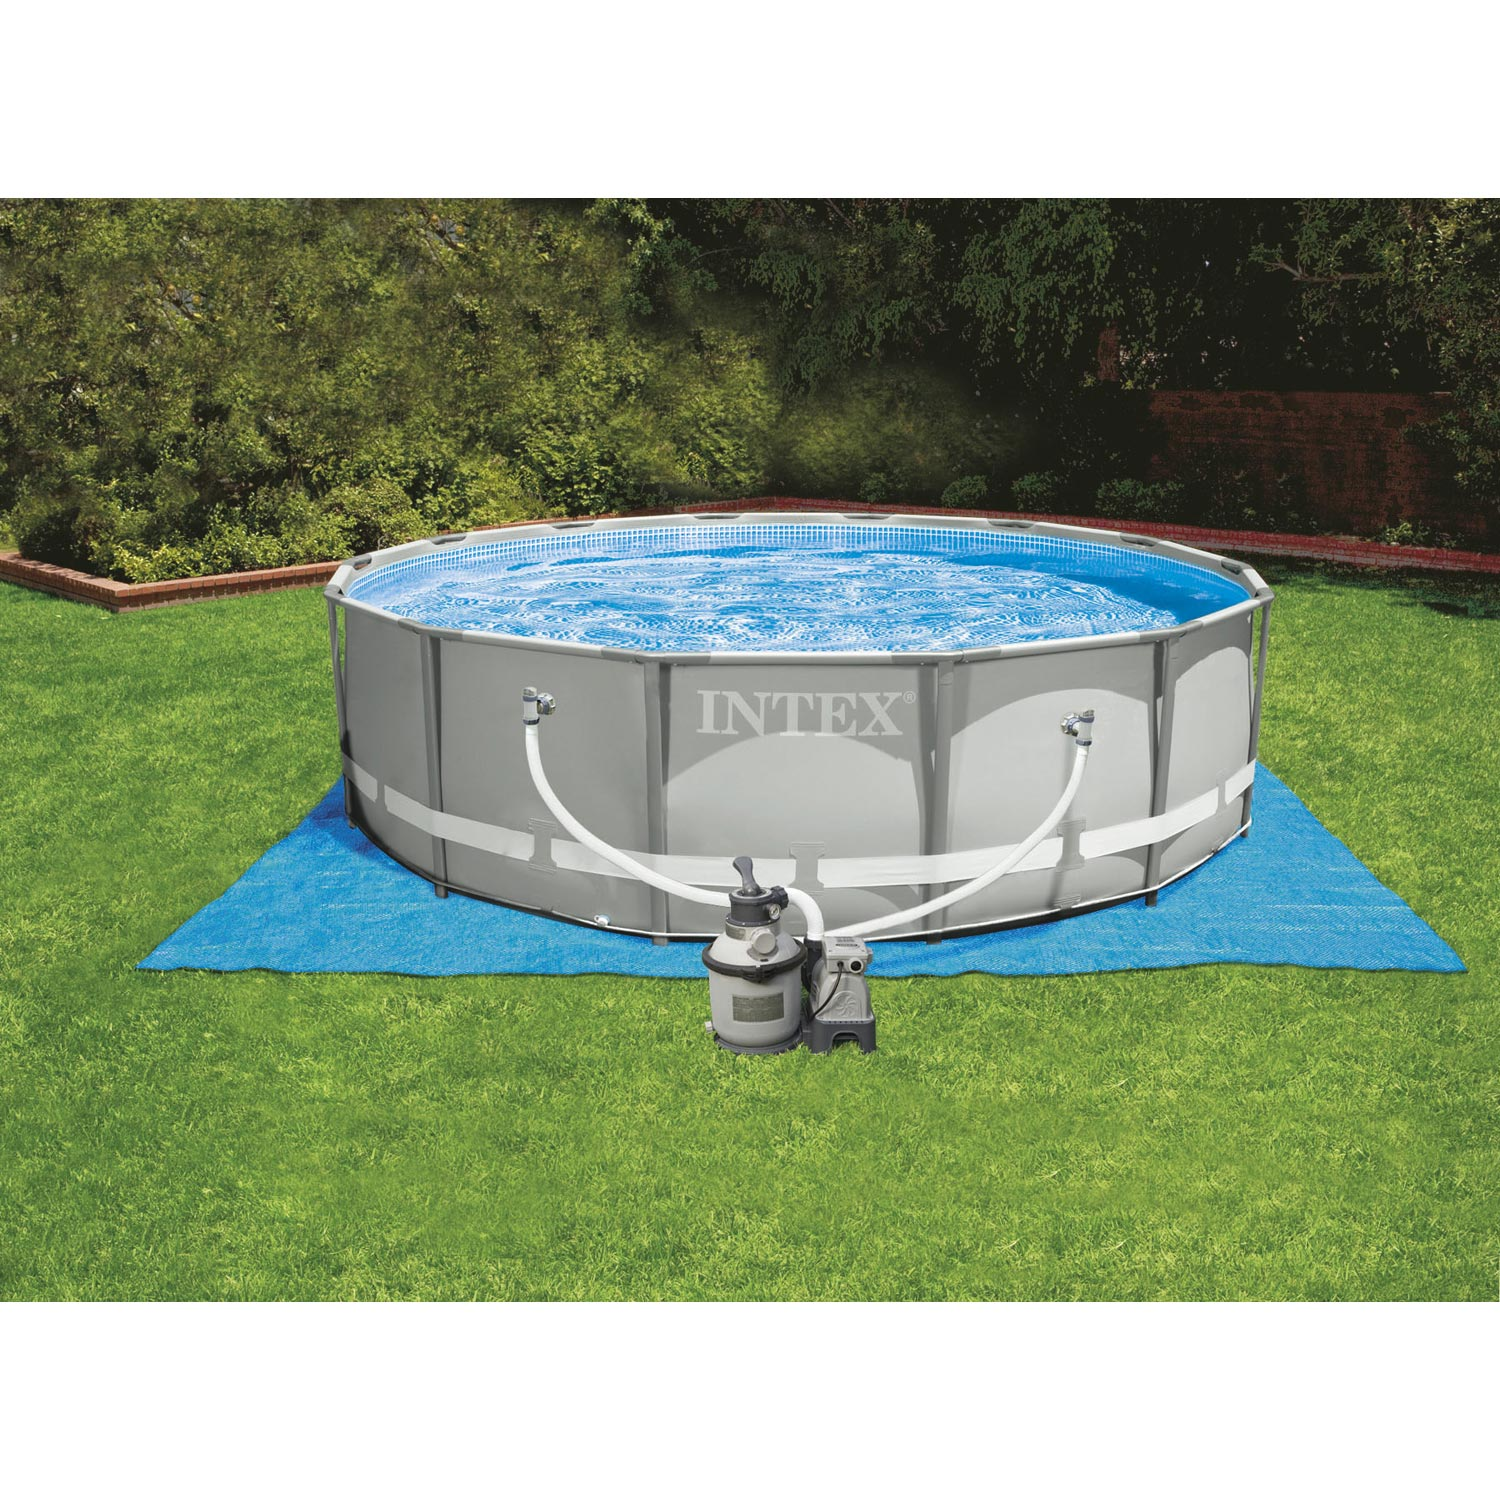 Piscine hors sol autoportante tubulaire ultraframe intex for Pompe piscine hors sol leroy merlin